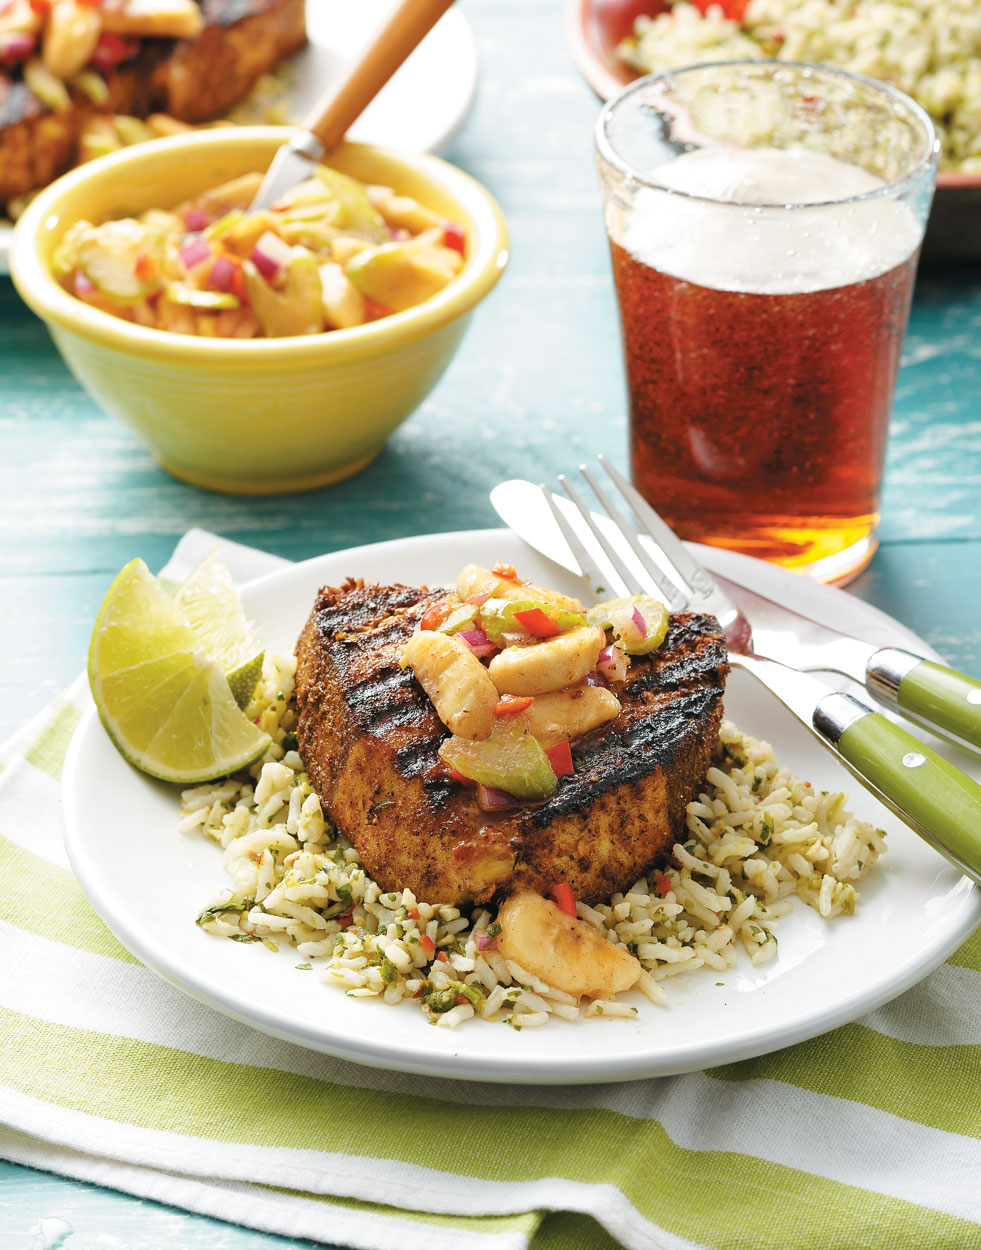 St. Lucia Jerk Fish with Banana Salsa